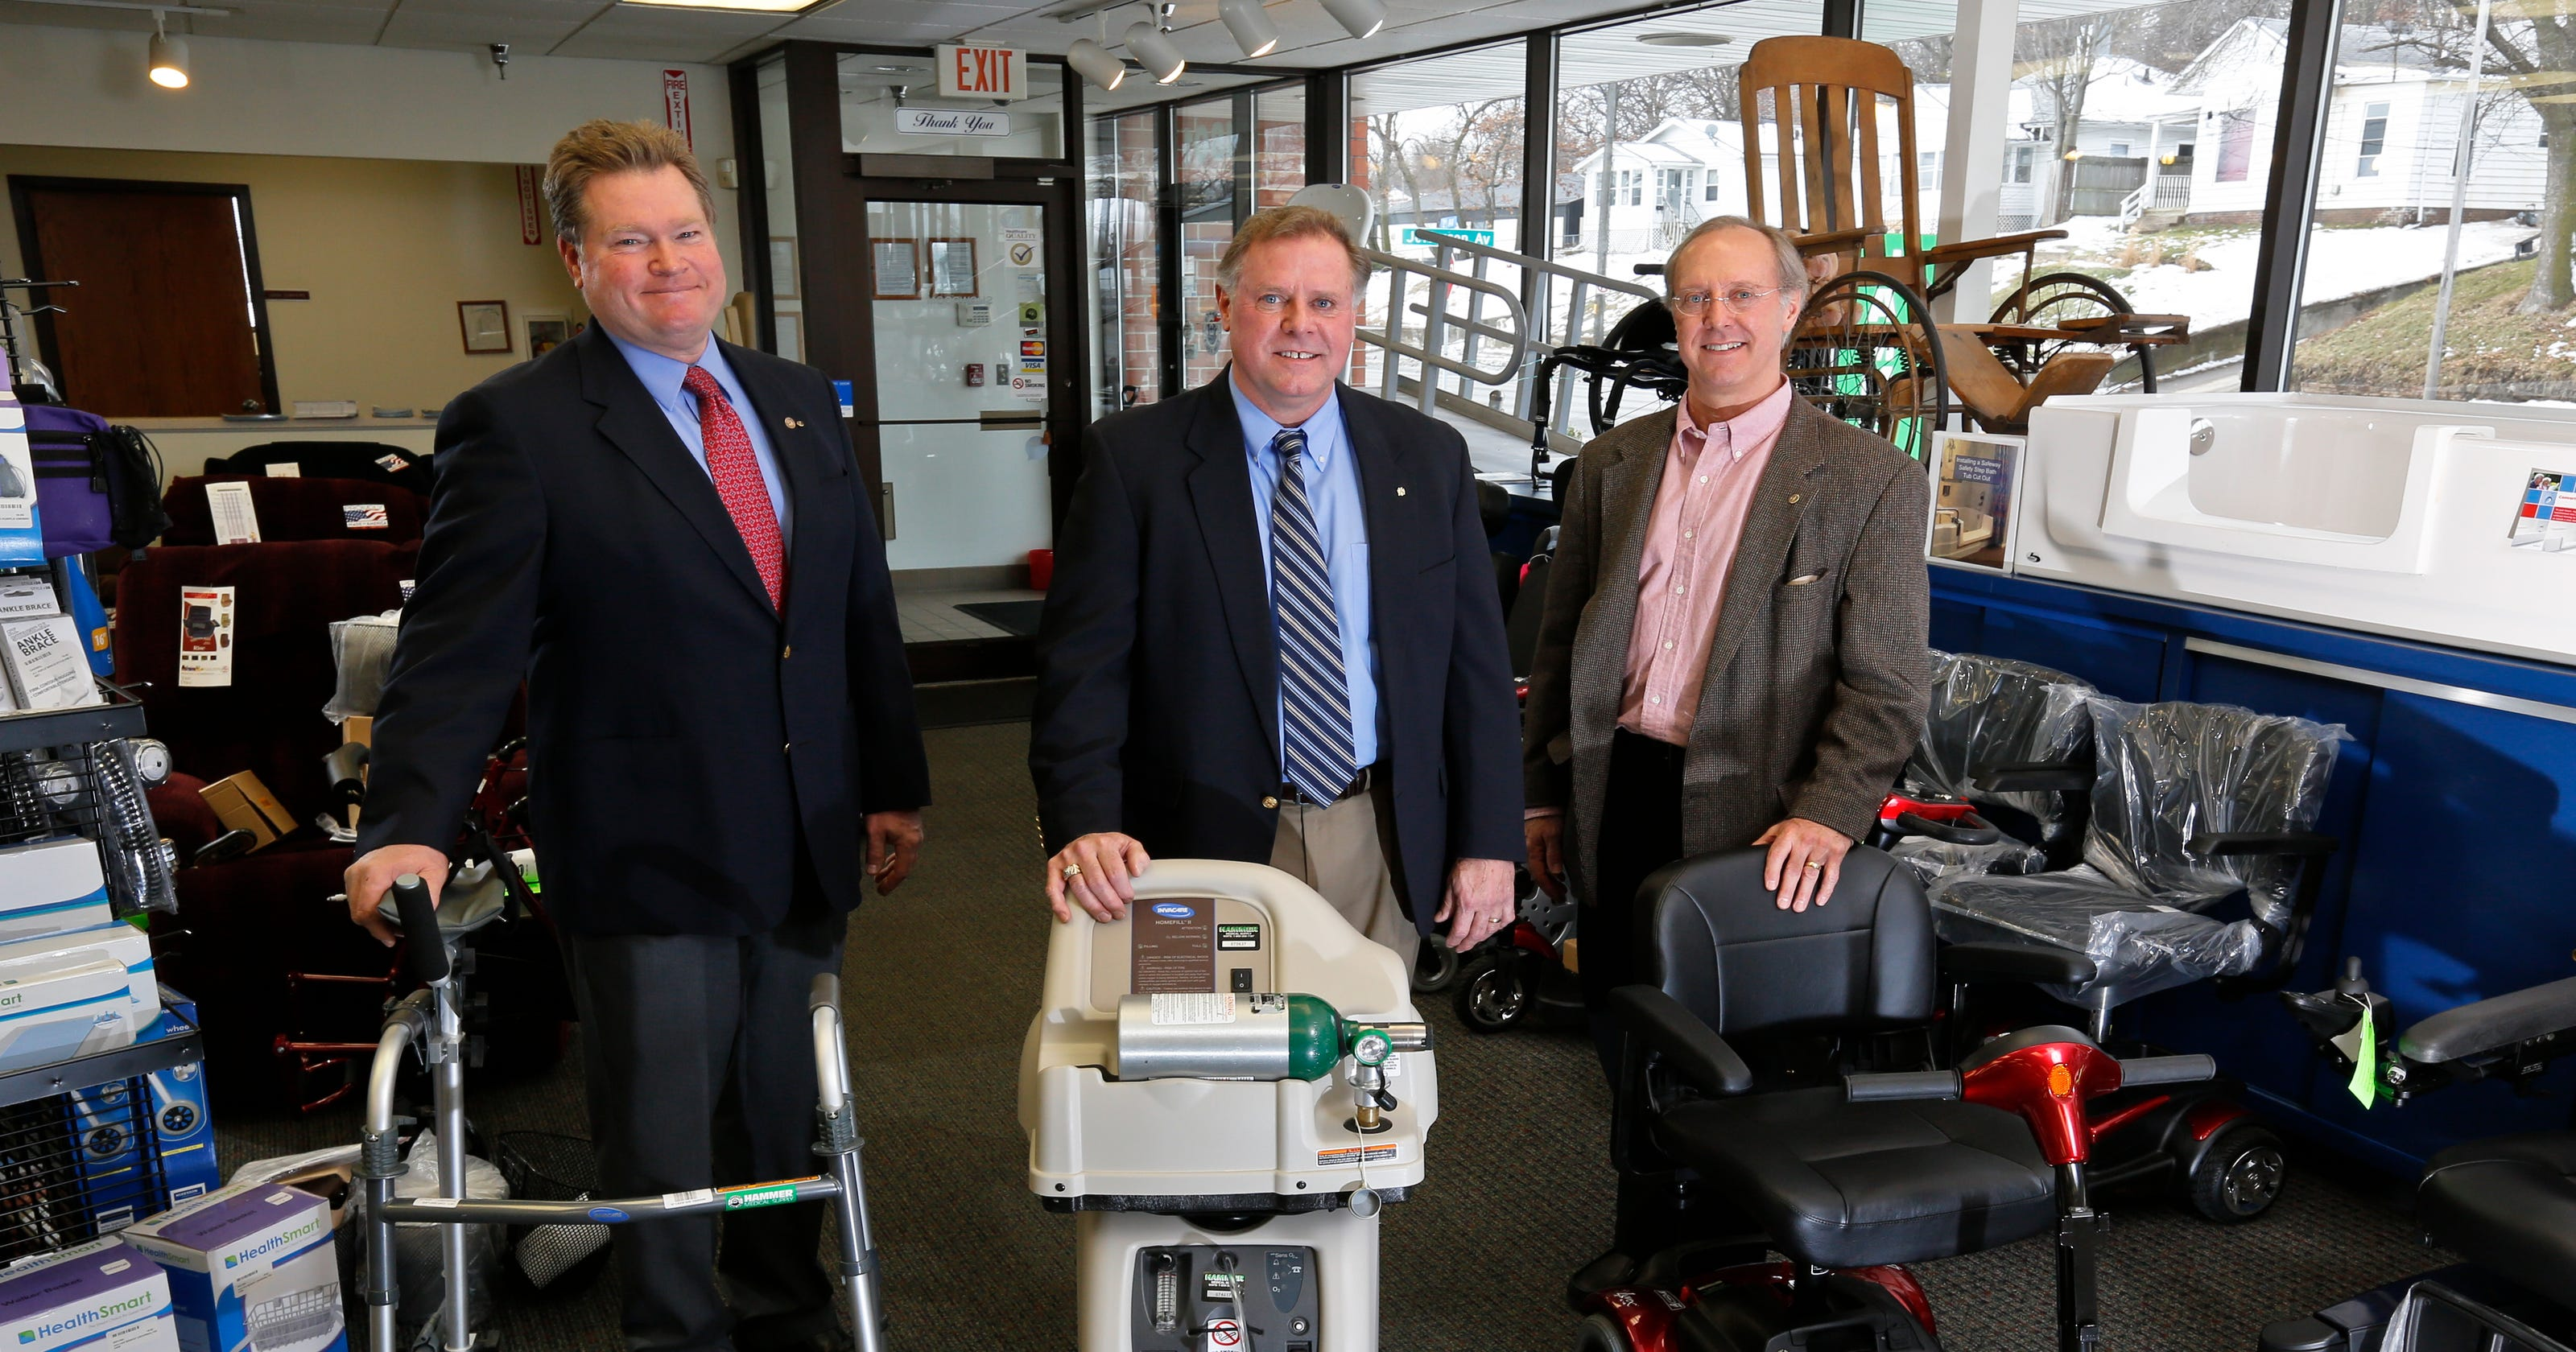 Hammer Medical Supply's new owner plans to continue to grow